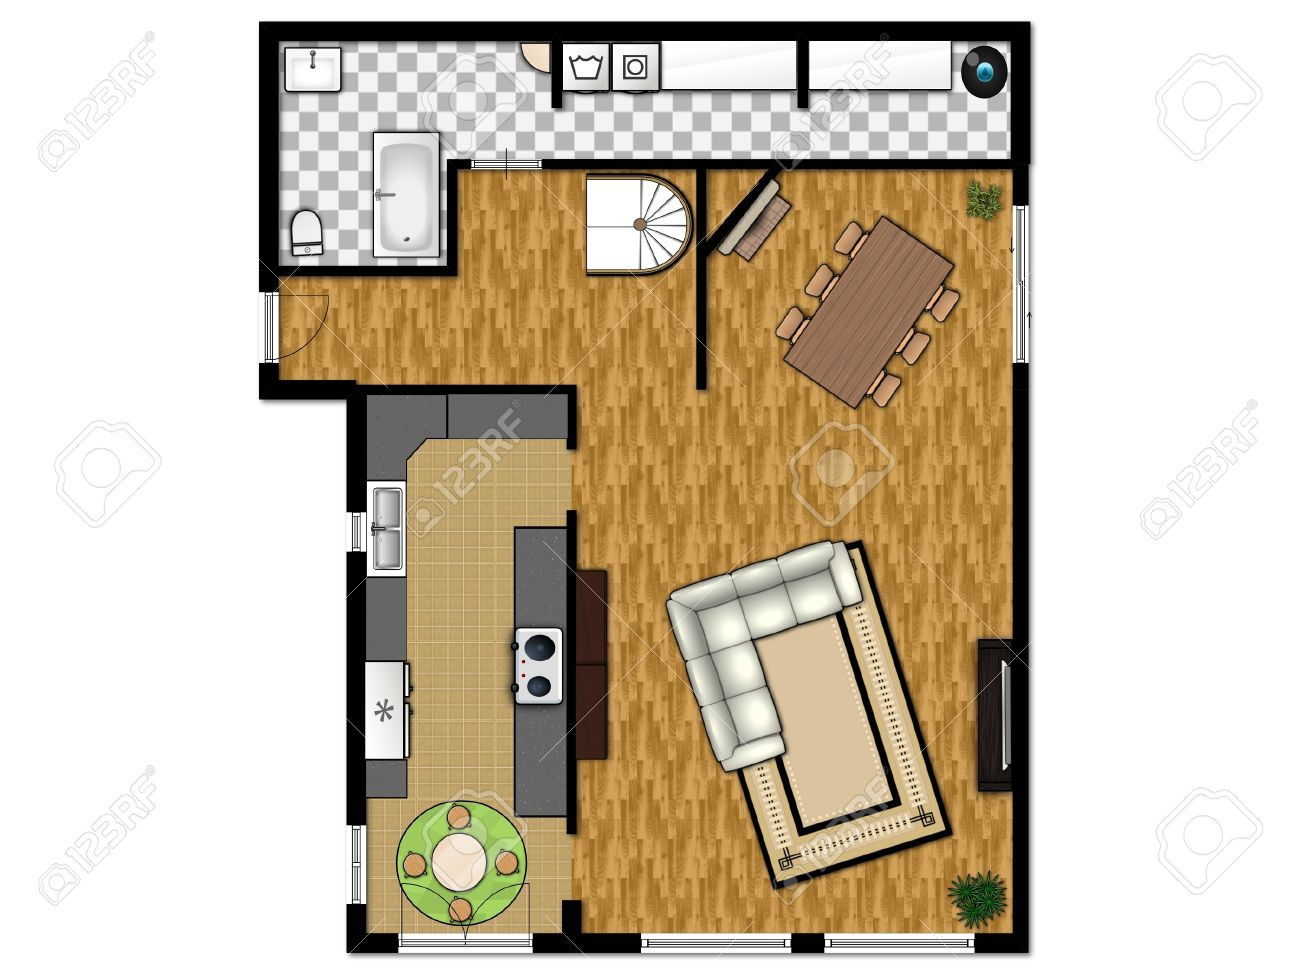 2D Floor Plan Of The First Level With Kitchen, Living Room, Bathroom And  Laundry